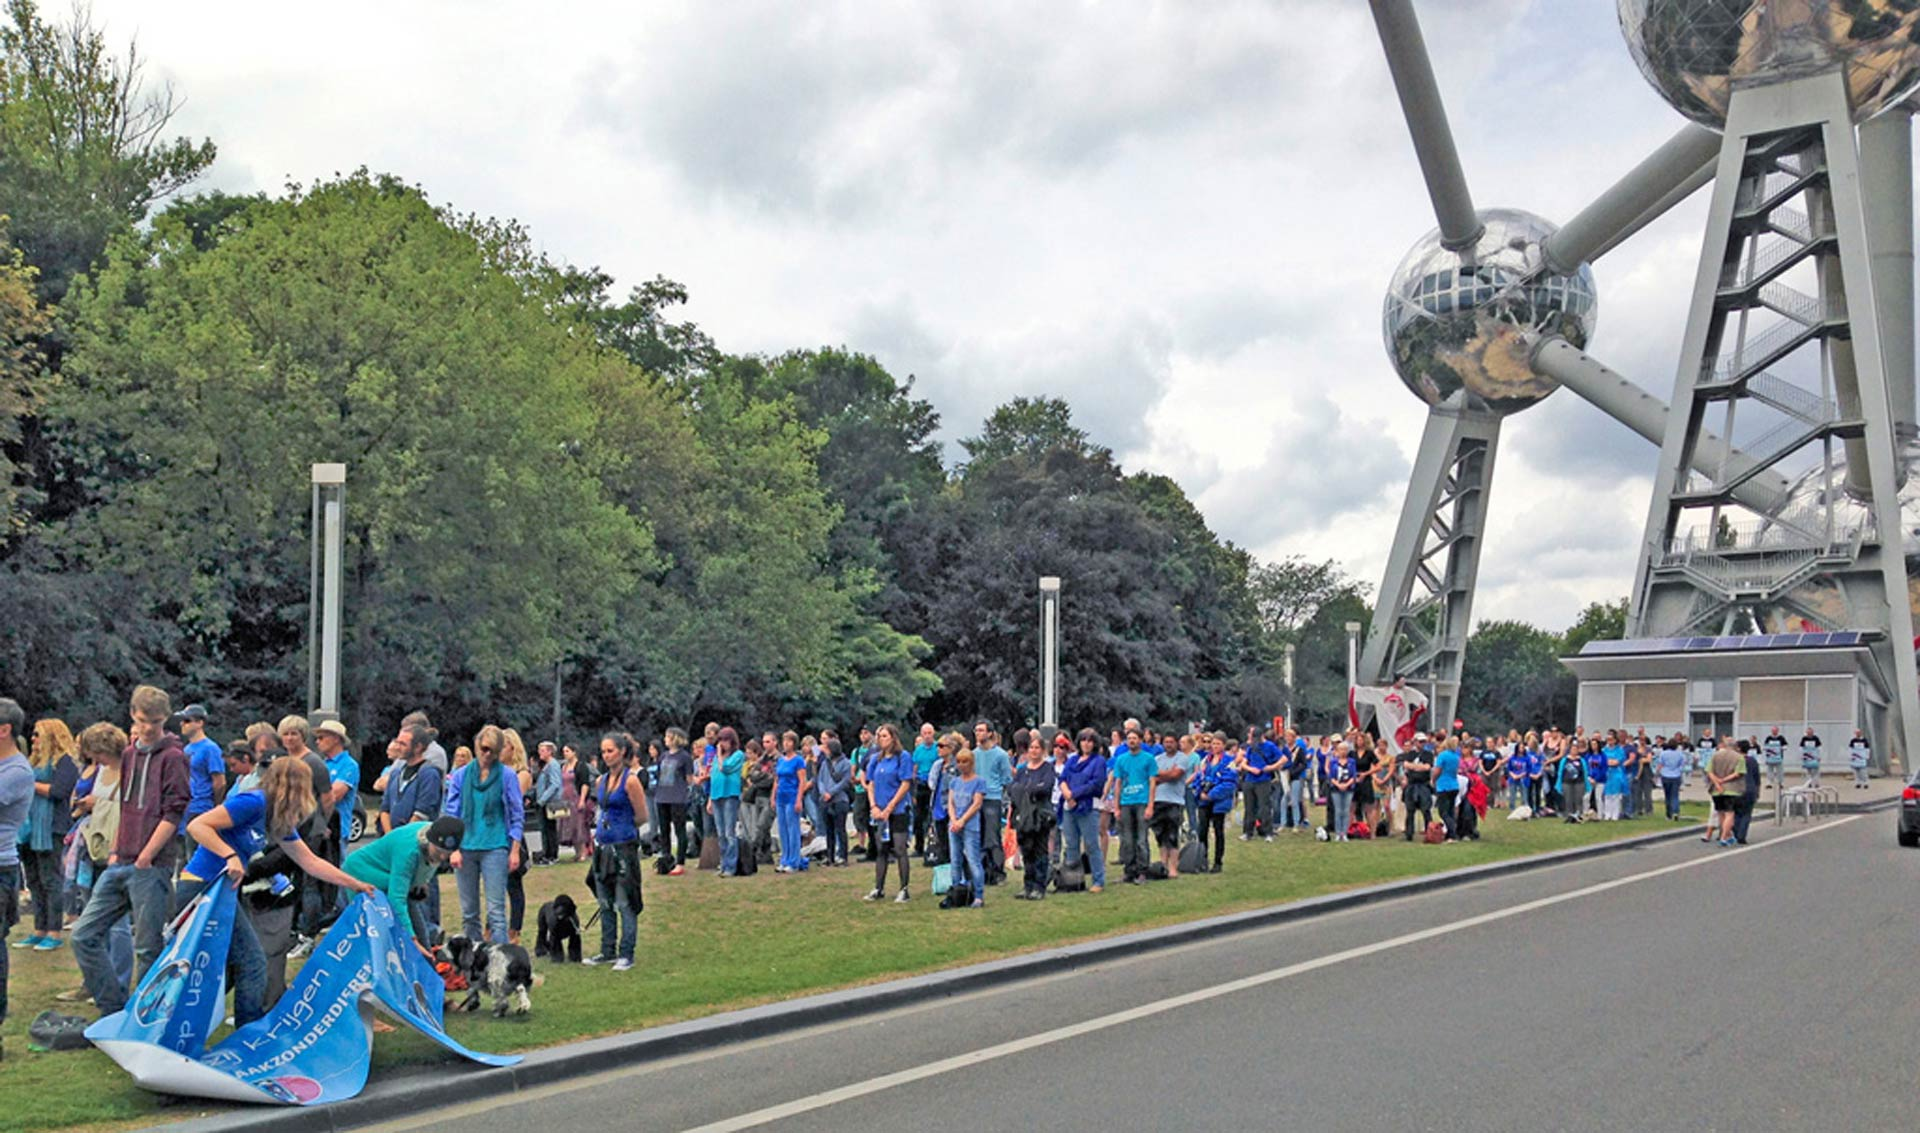 Protestors from all over Europe gather to deliver the message, 'Close Europe's Dolphinaria'. Photo: Sasha Abdolmajid